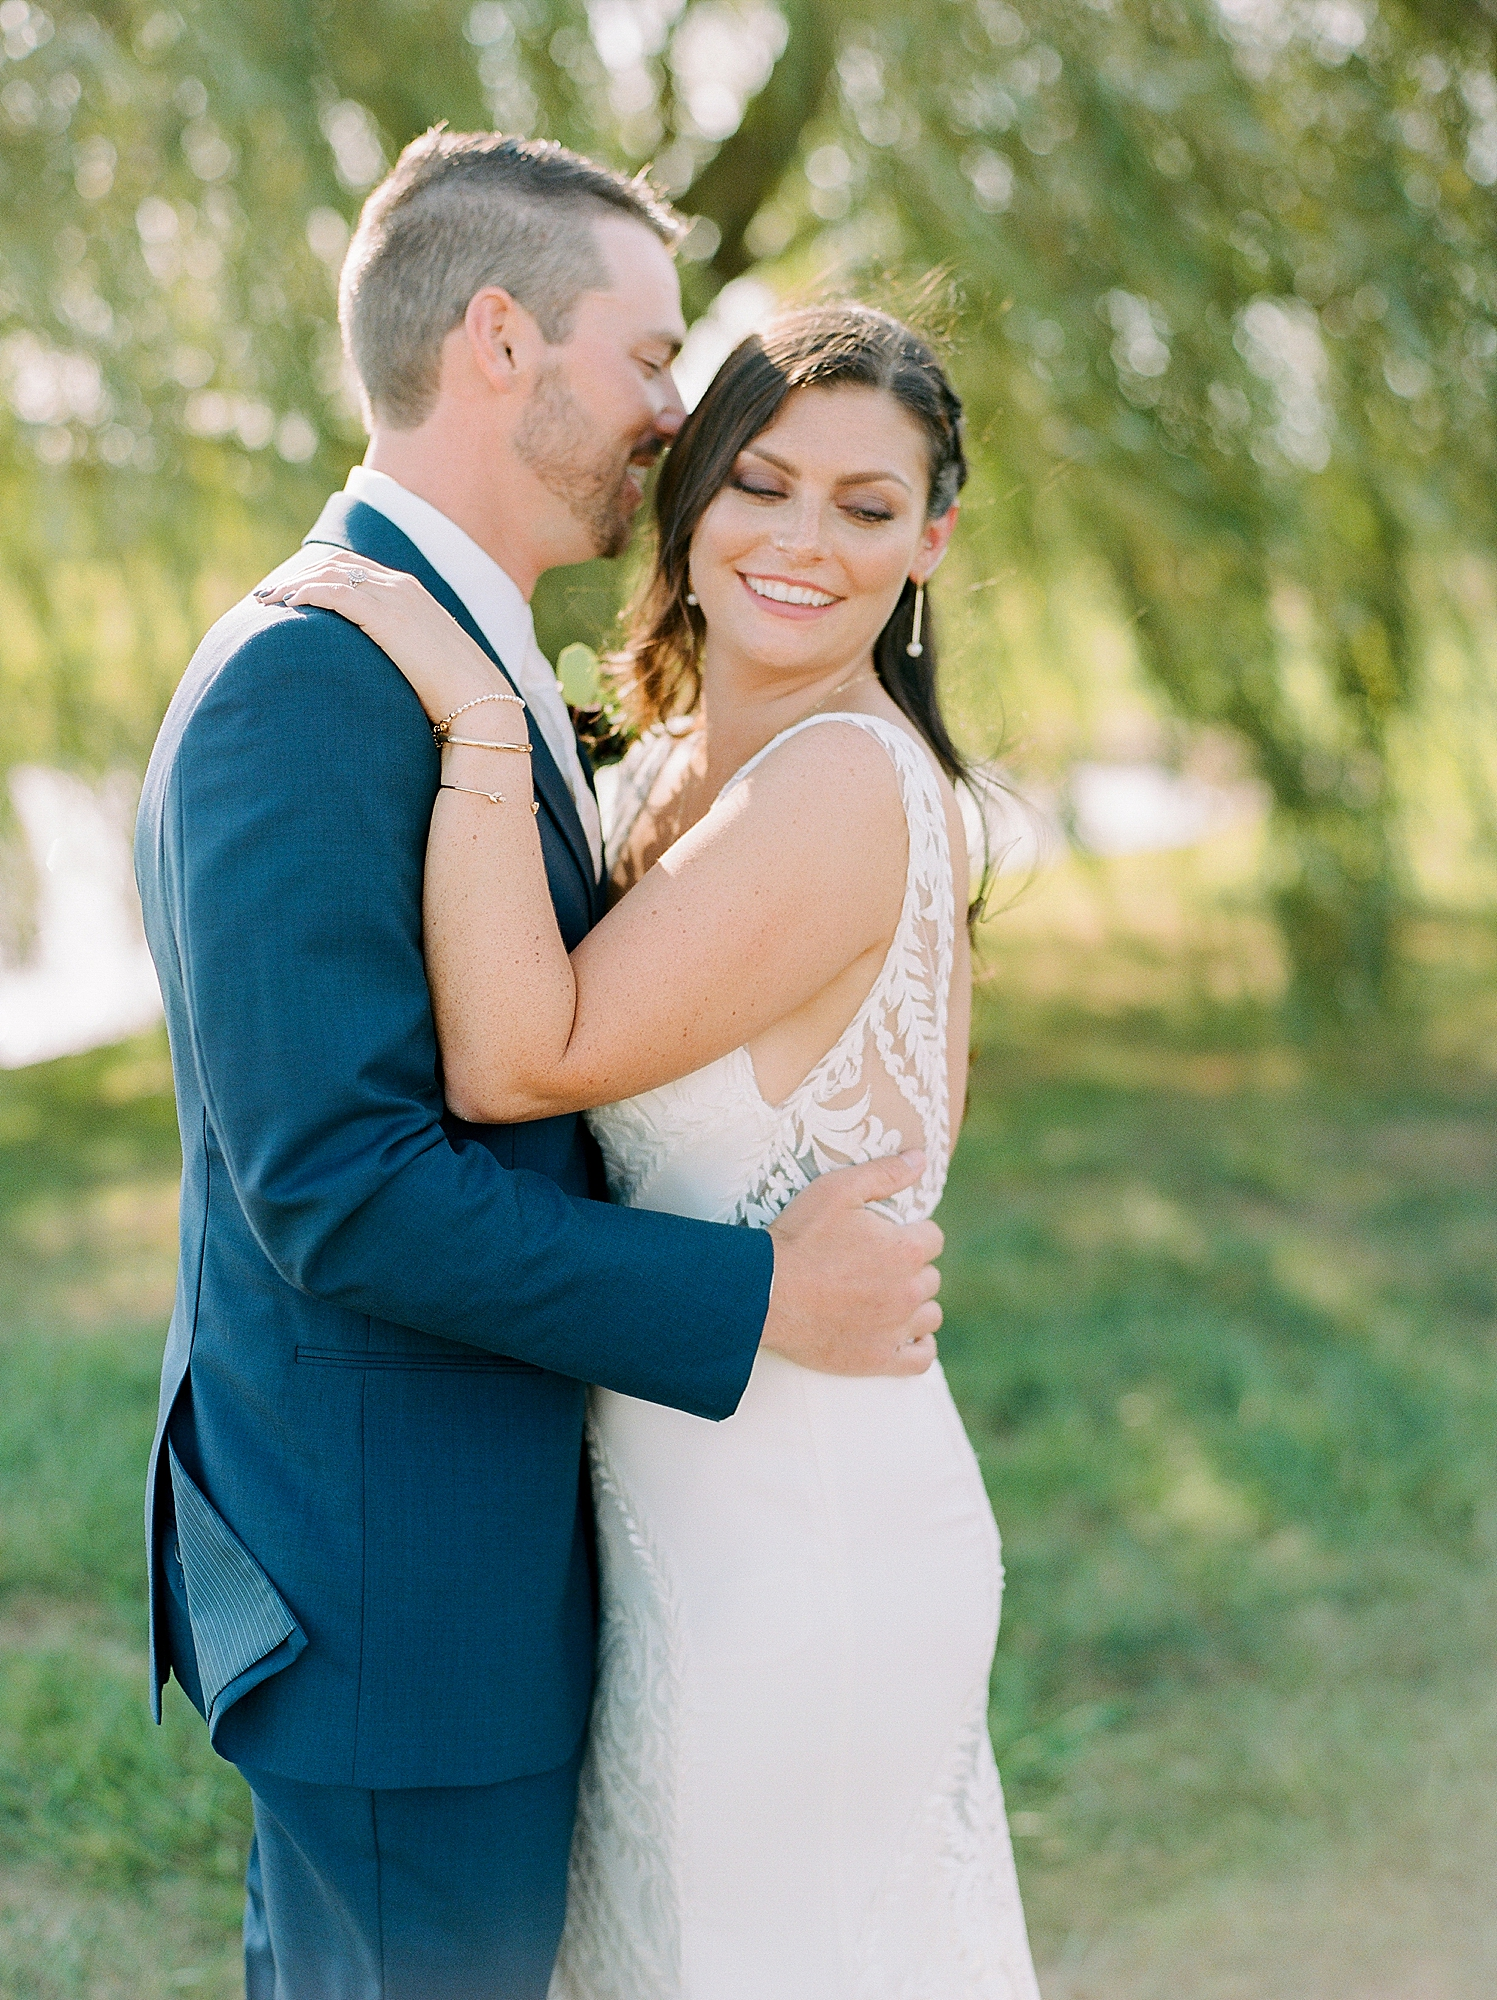 Linwood Country Club Film Wedding Photography by Magdalena Studios South Jersey Wedding Photographer 32